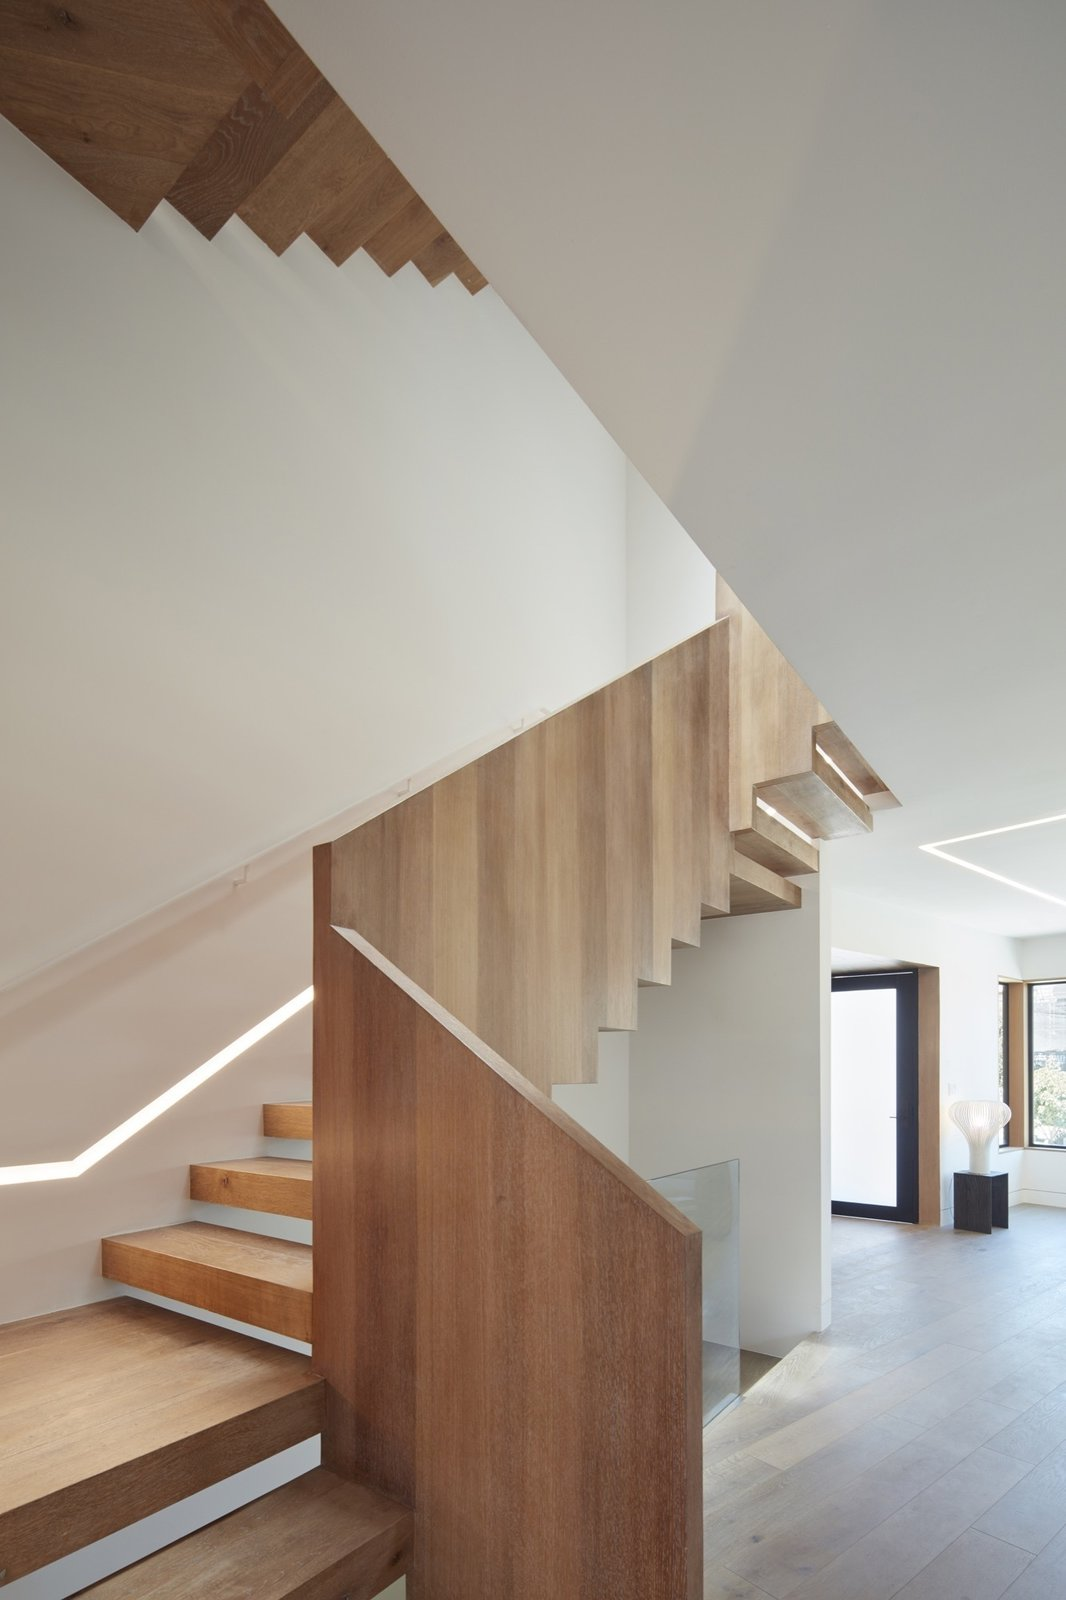 Staircase, Wood Tread, and Wood Railing Staircase  Noe Valley House